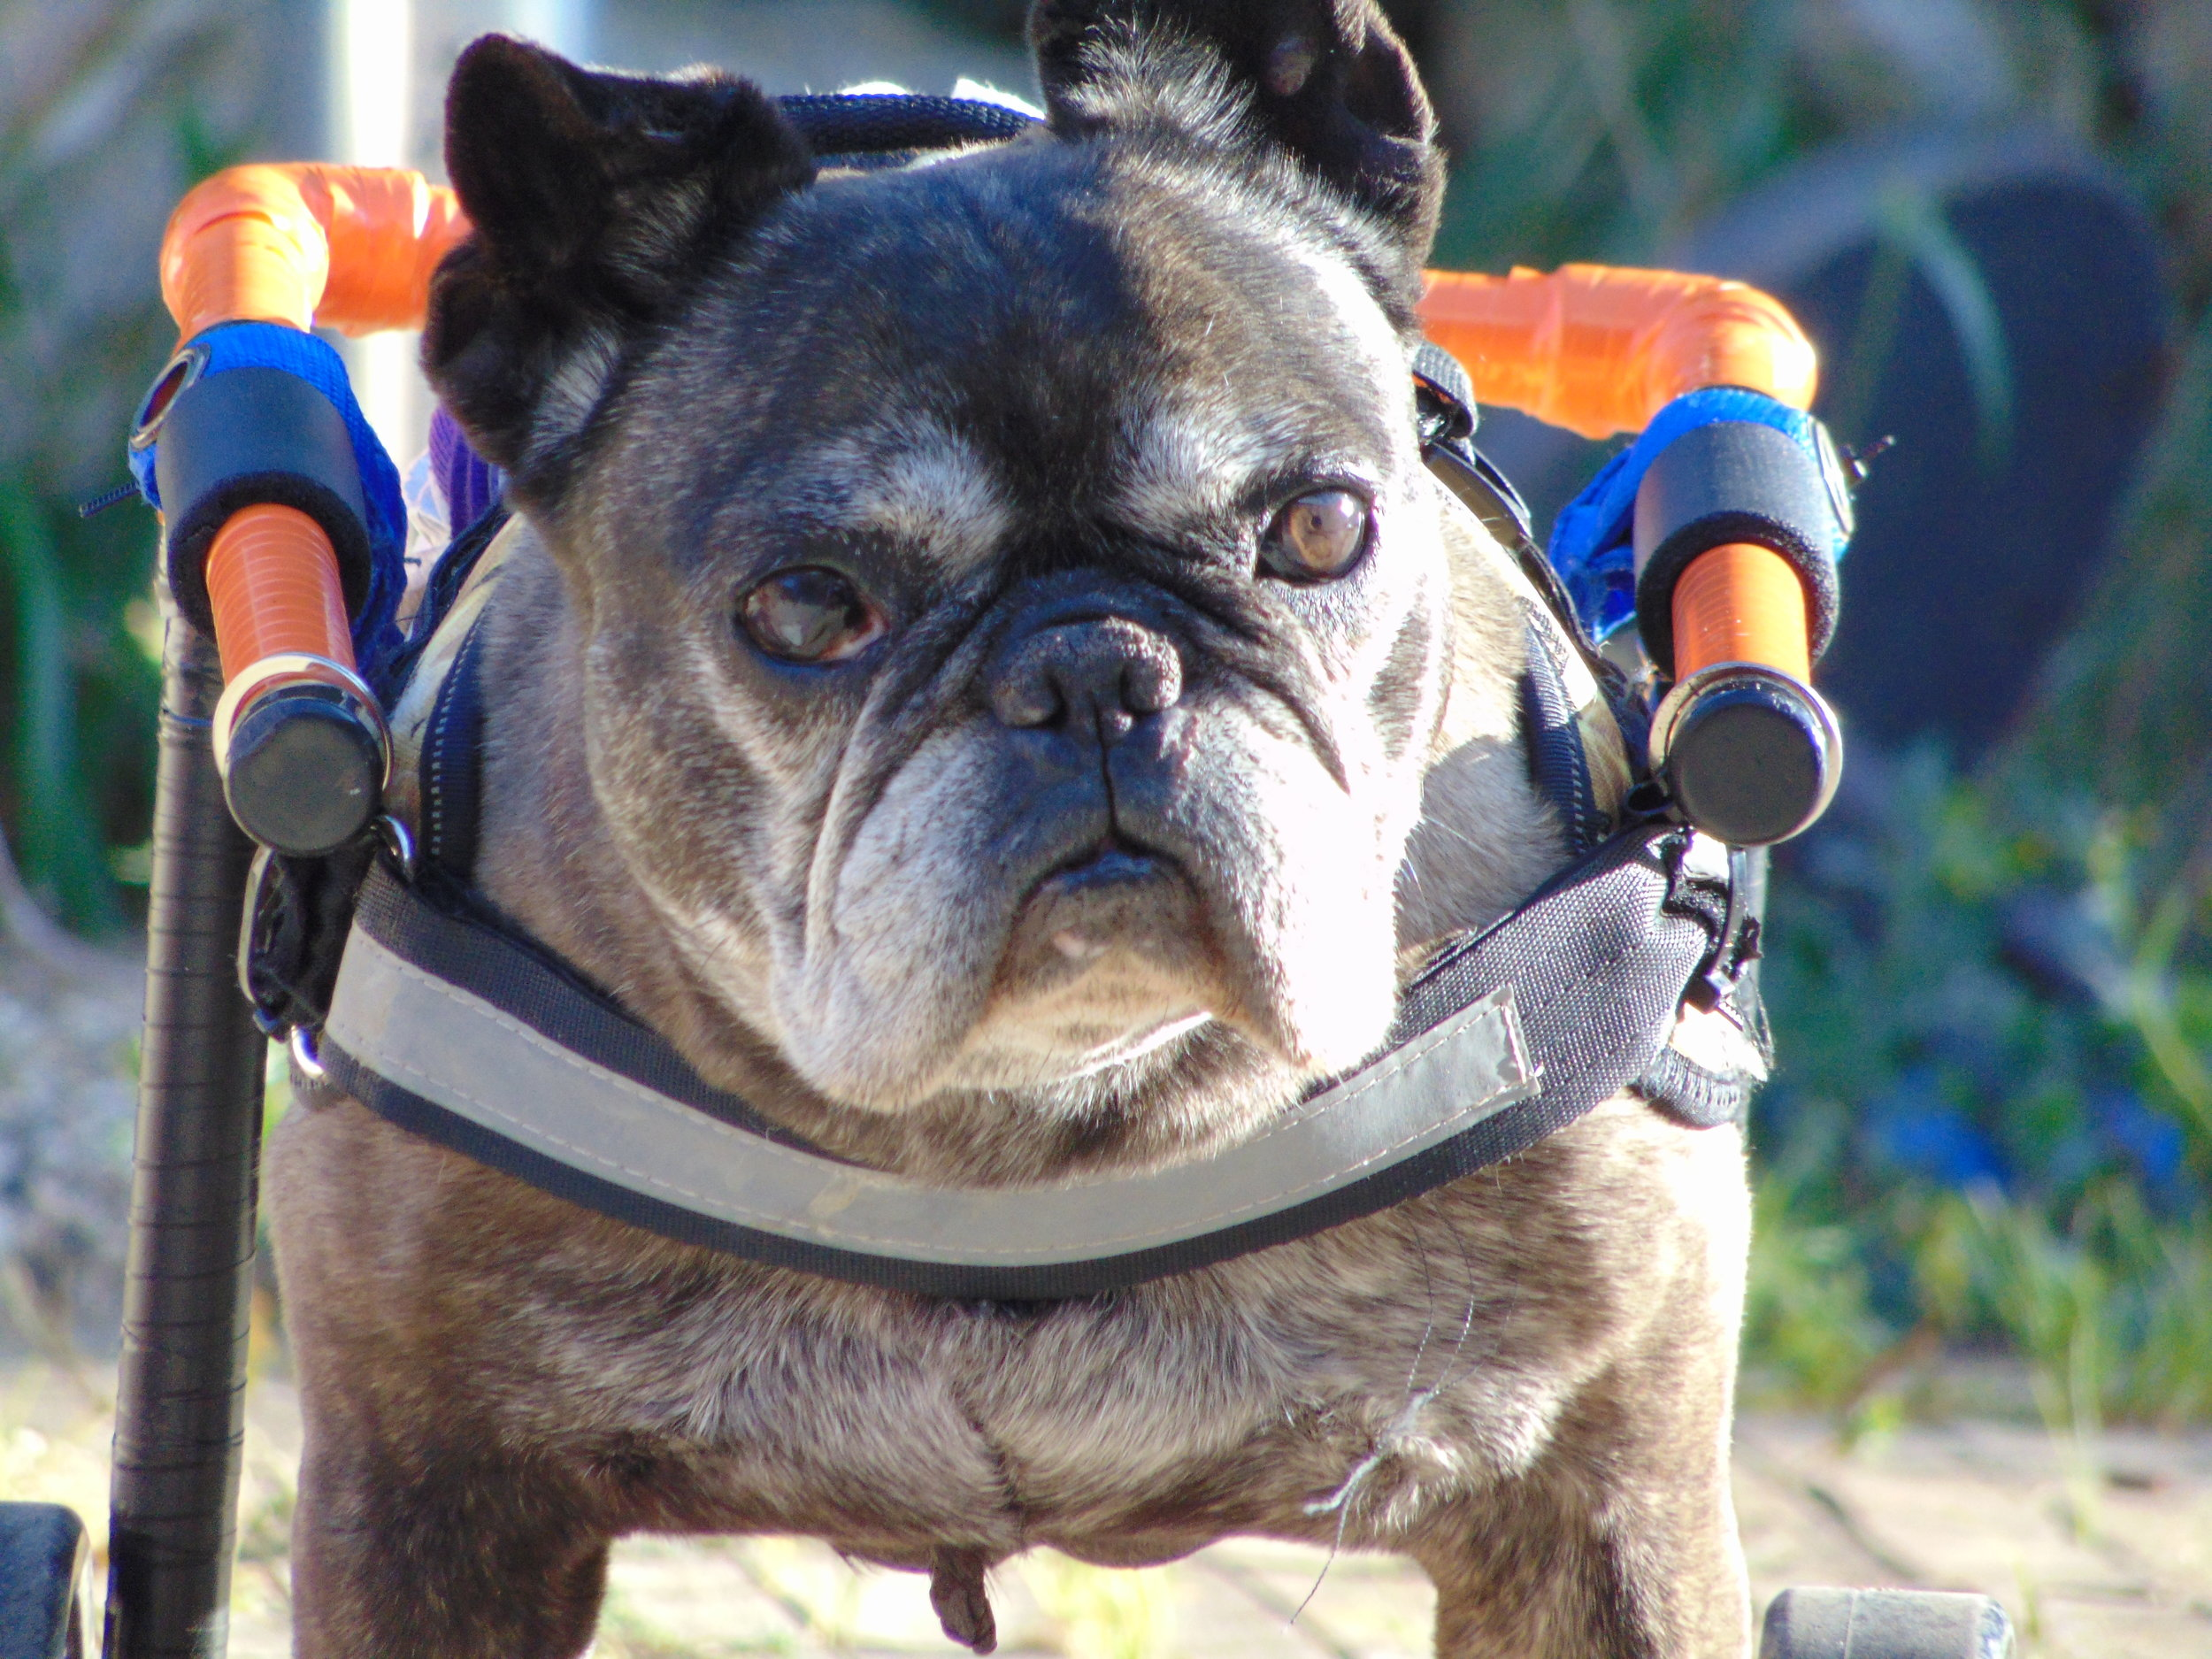 Loula - French Bulldog from Mallorco, Spain, in need of a rear-end wheelchair: $350 includes shipping to Spain.